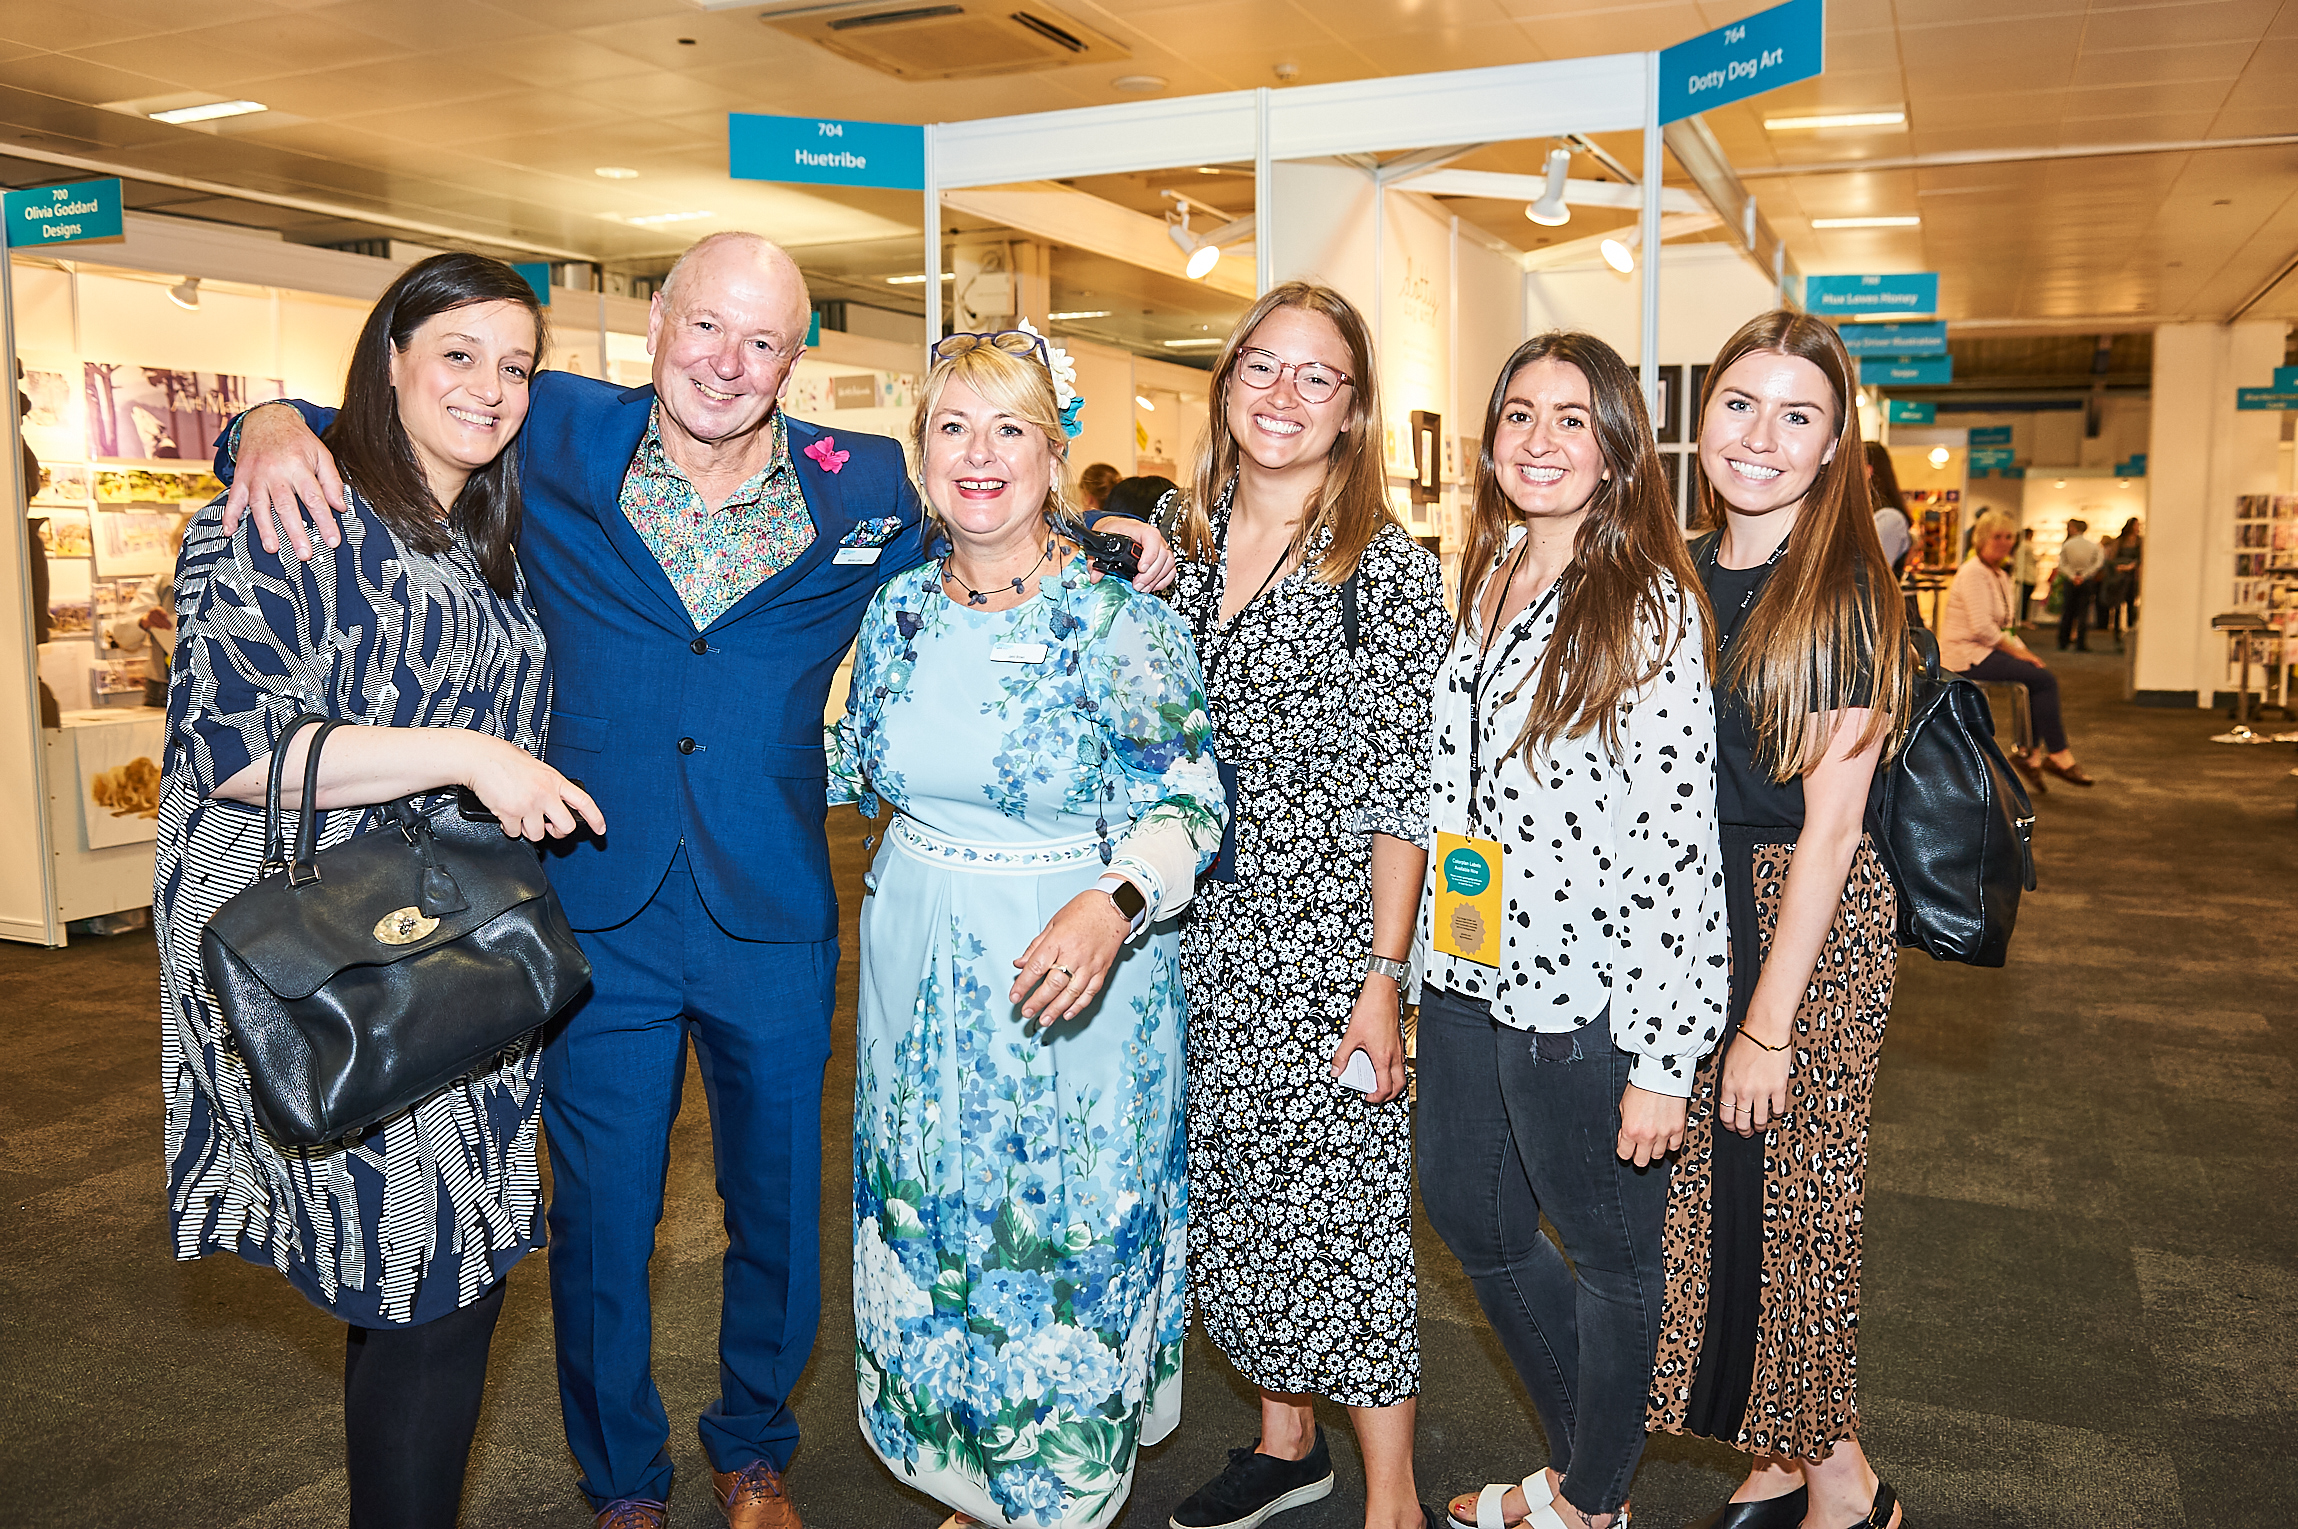 Above: Paperchase's head of buying, Tish Bas (far left) with colleagues Natalie Alexander (third right), Emma Clooney (second right) and Lucy Sumner (far right) with PG's Warren Lomax and Jakki Brown at PG Live.